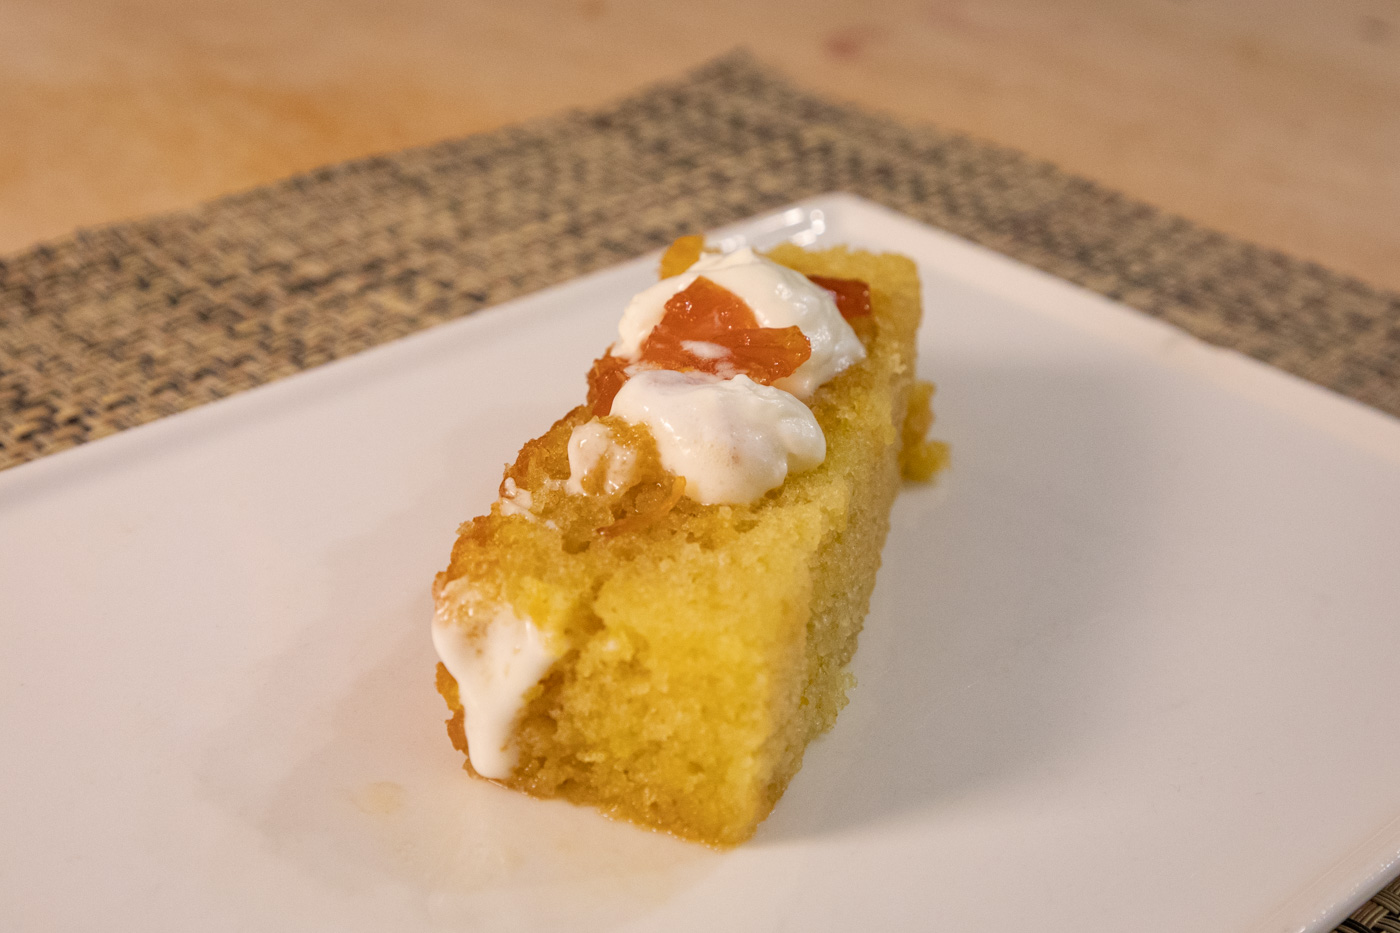 Olive Oil Cake with Citrus Marmalade and Yogurt from Pumpkin